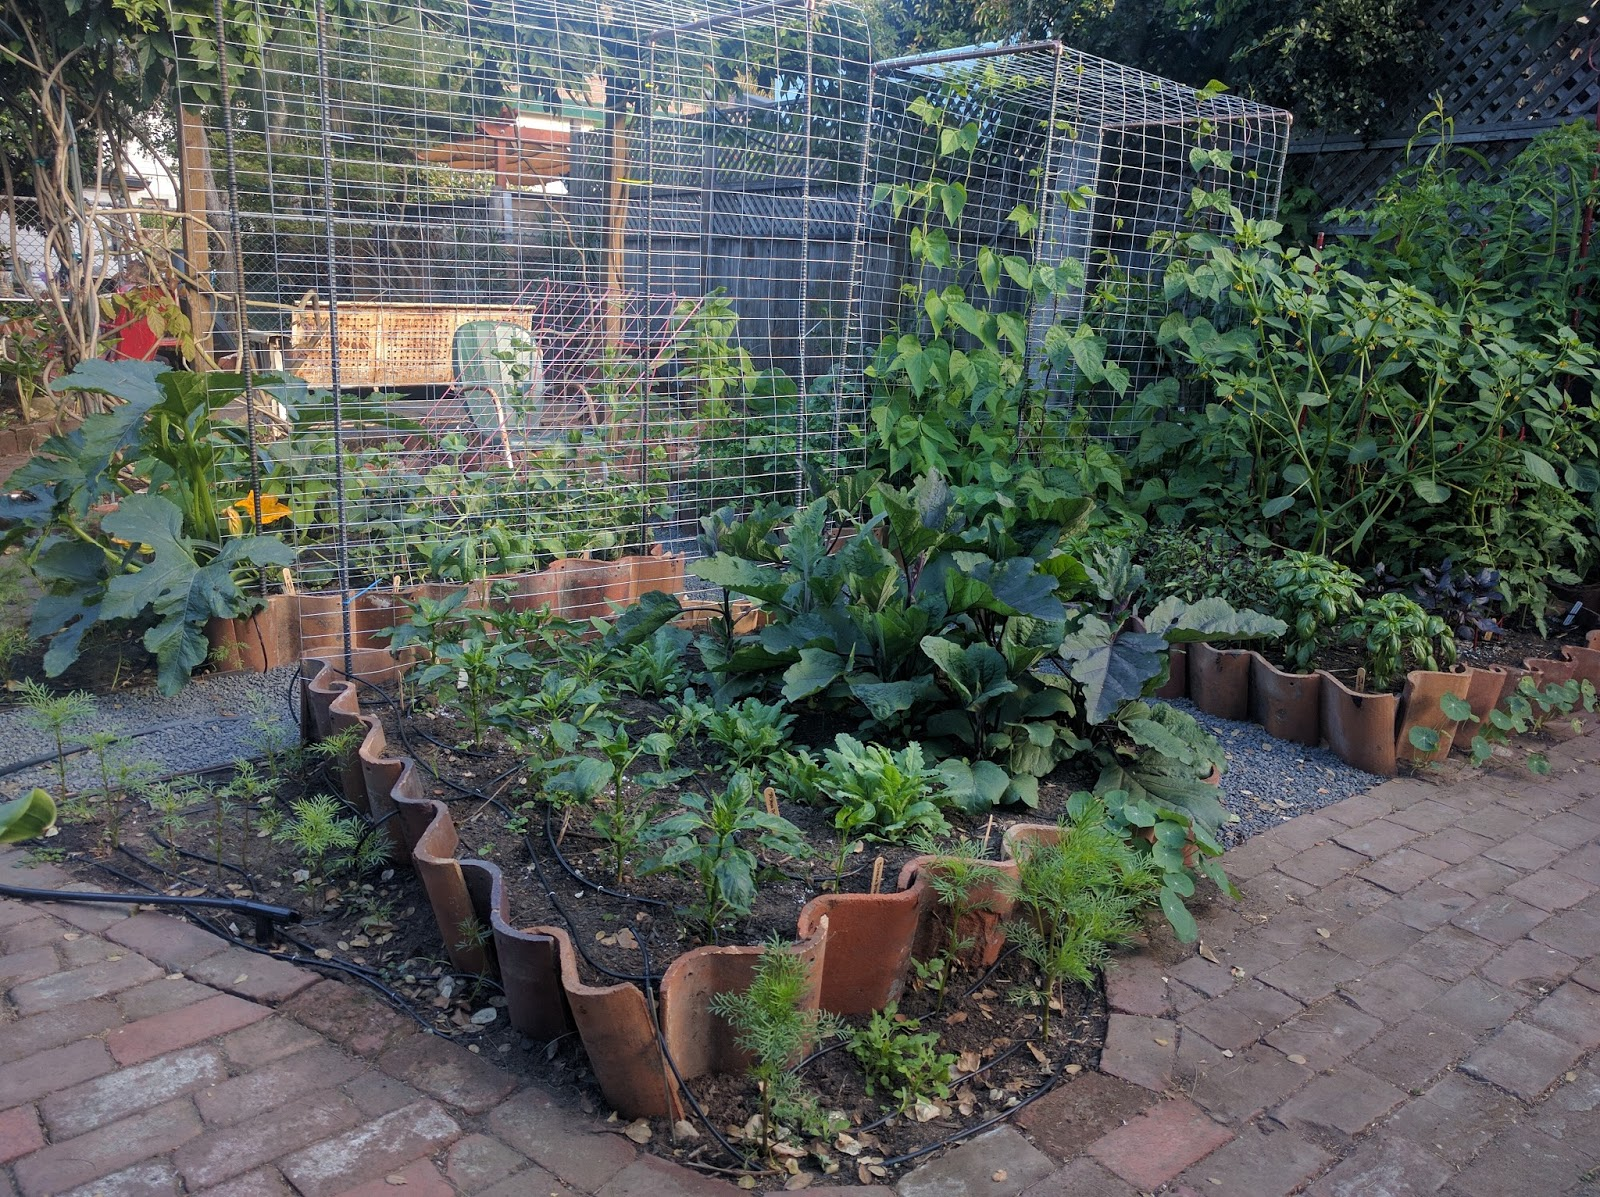 and without further ado heres my garden recipe for building raised beds with terra cotta tiles